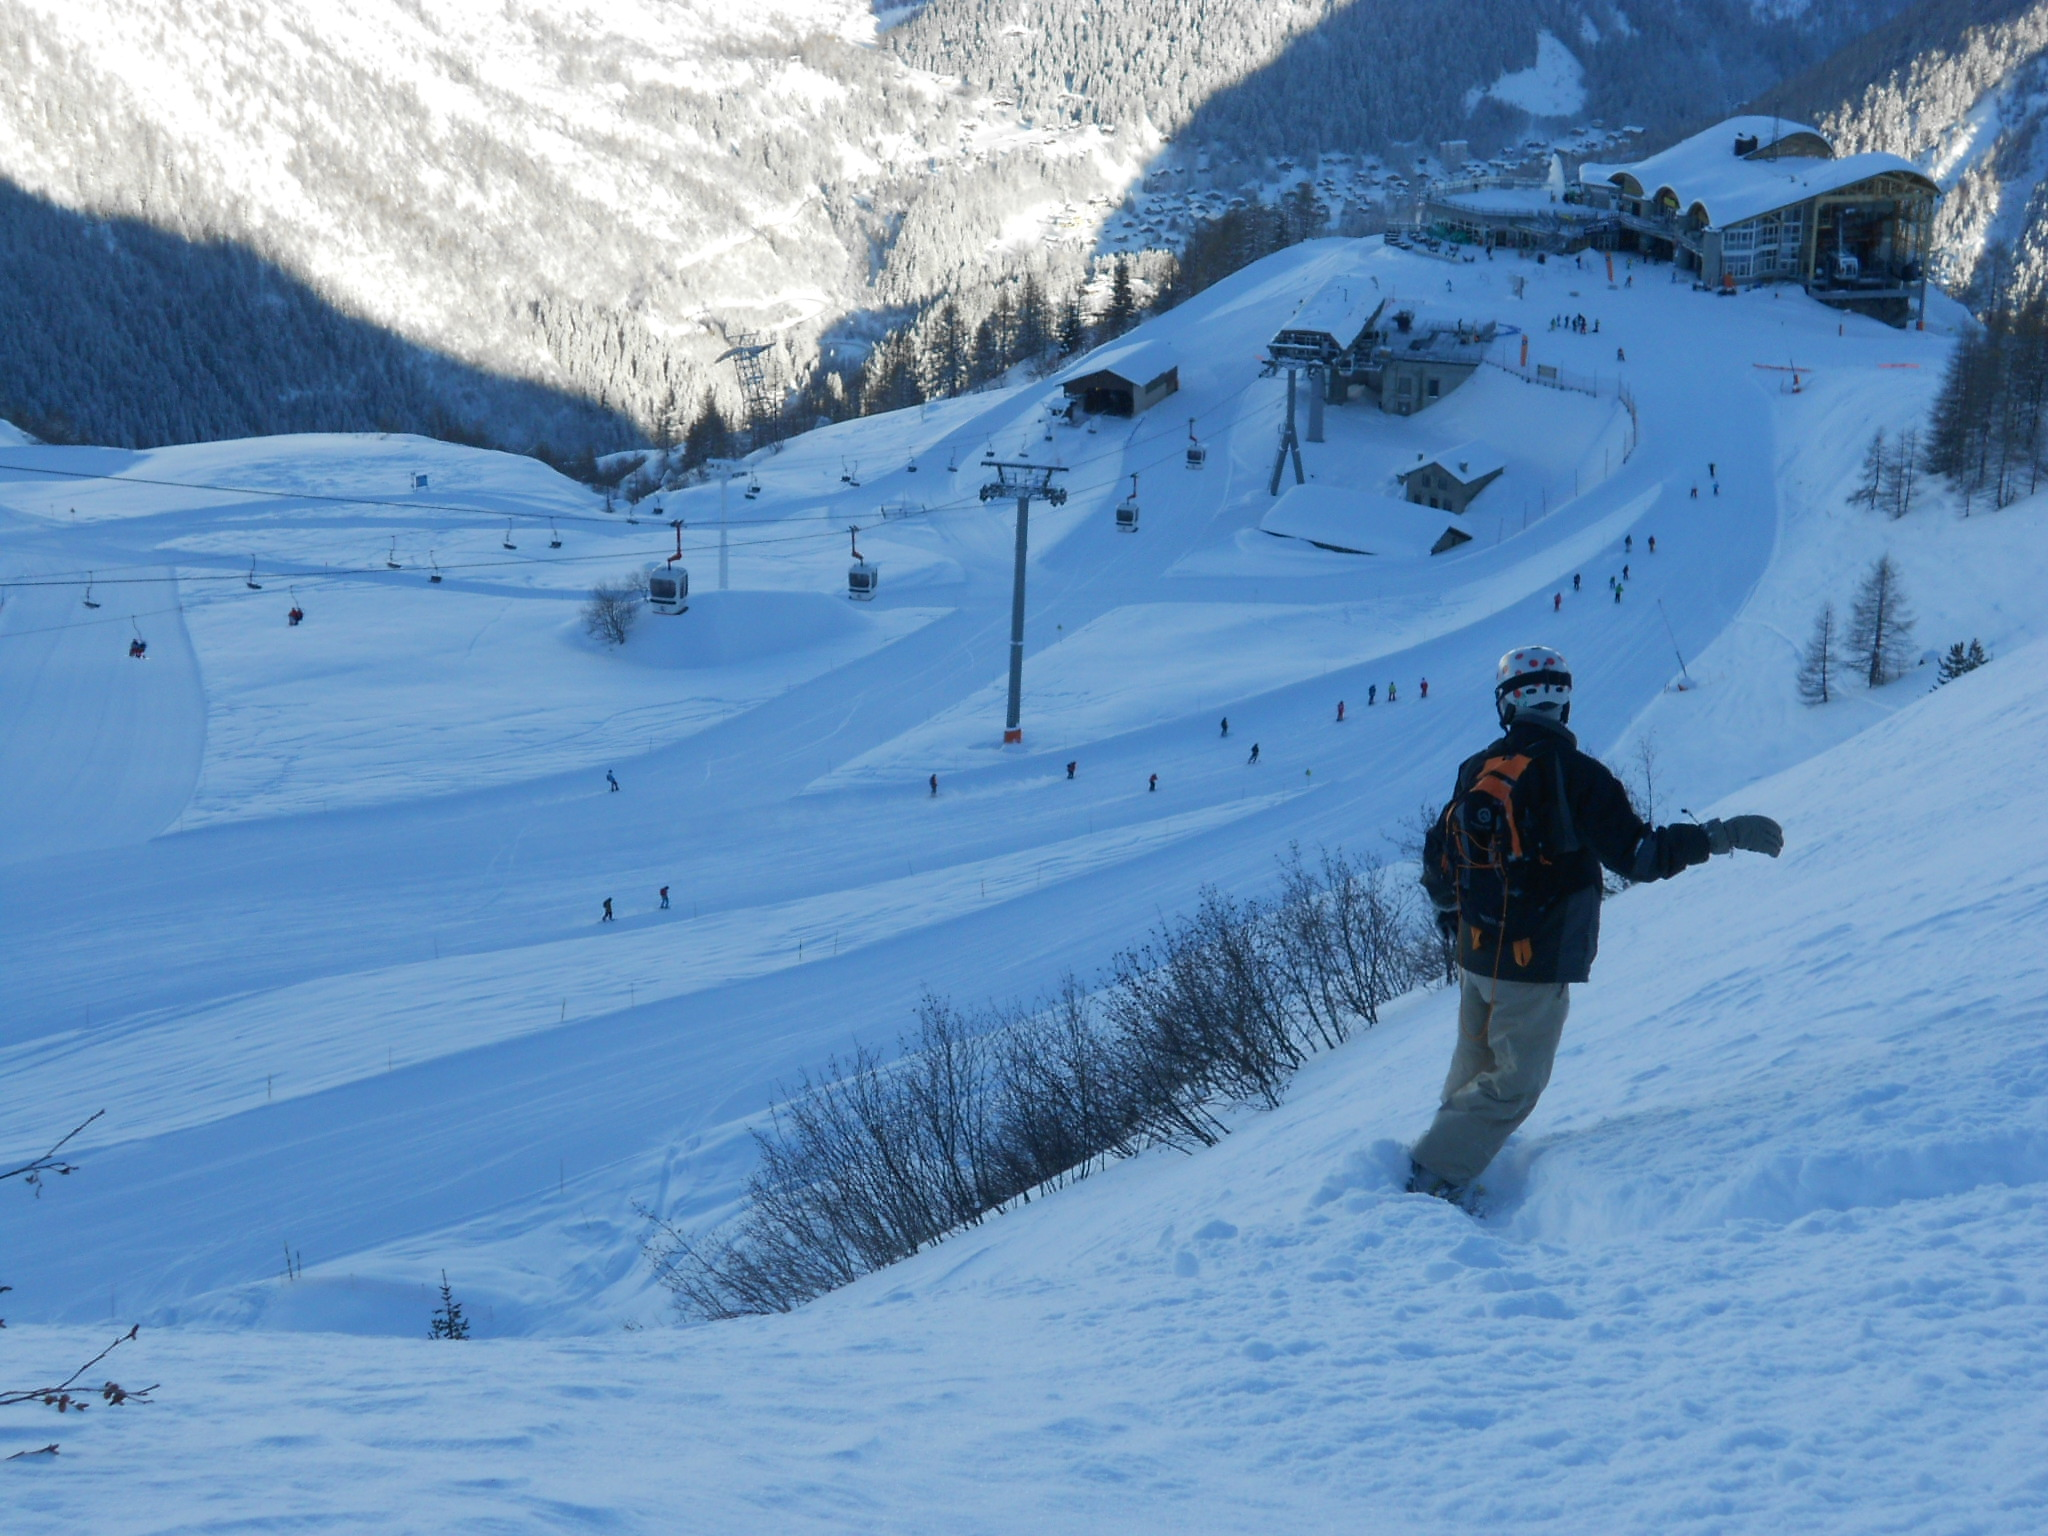 Snow Conditions Chamonix Valley Snow Report And Ski Conditions 8th